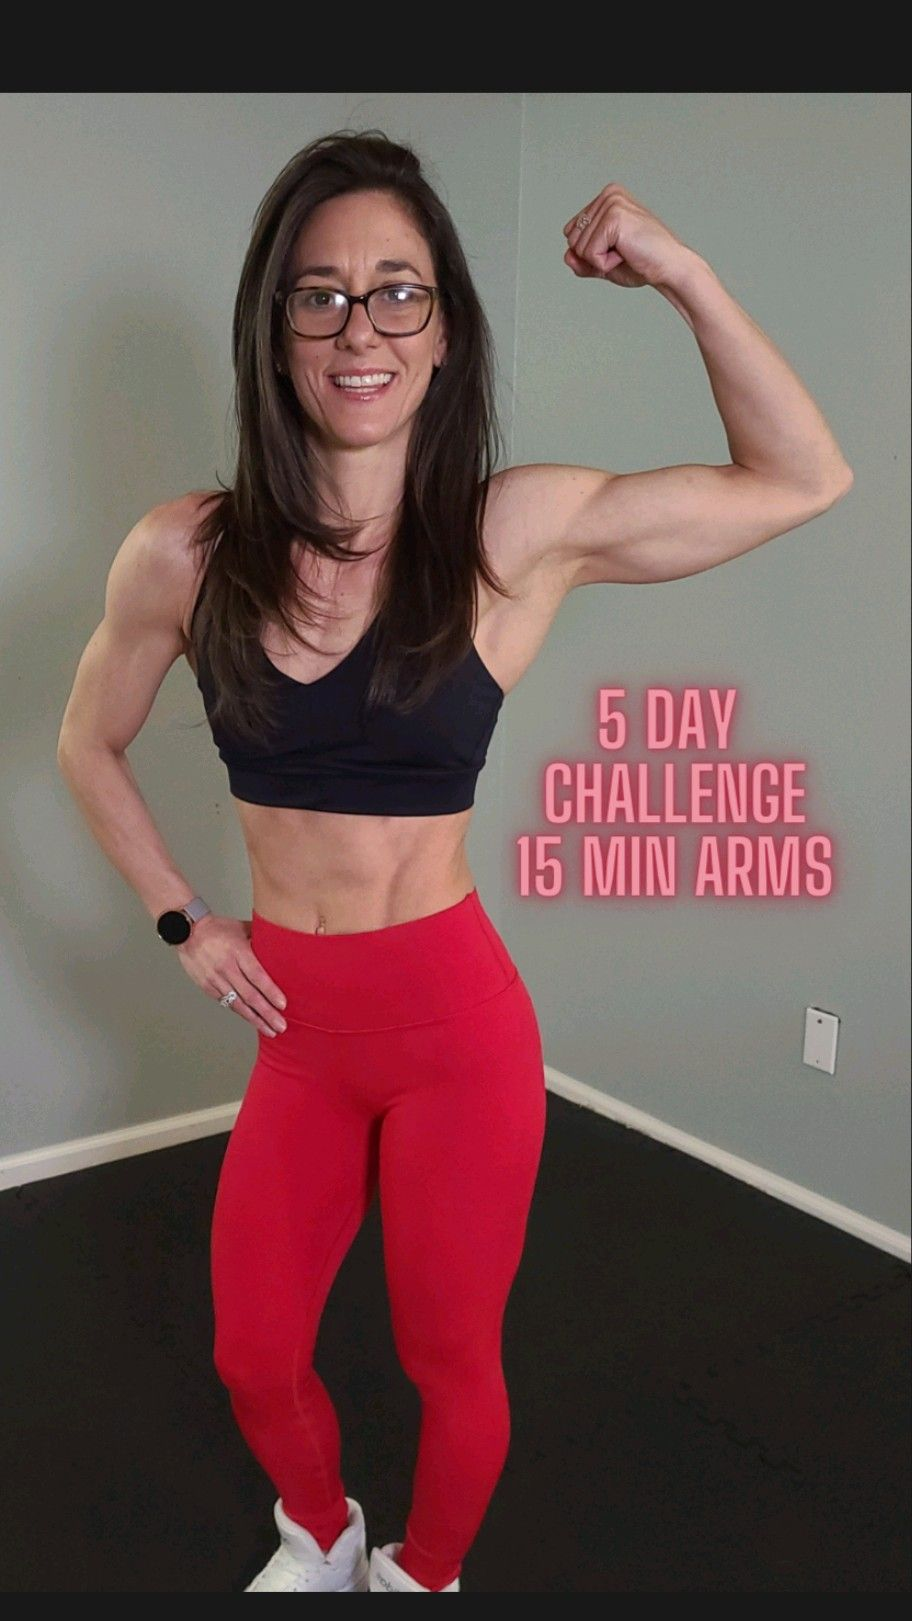 5 Day Workout Challenge at Home workout by Fit Tiff on YouTube